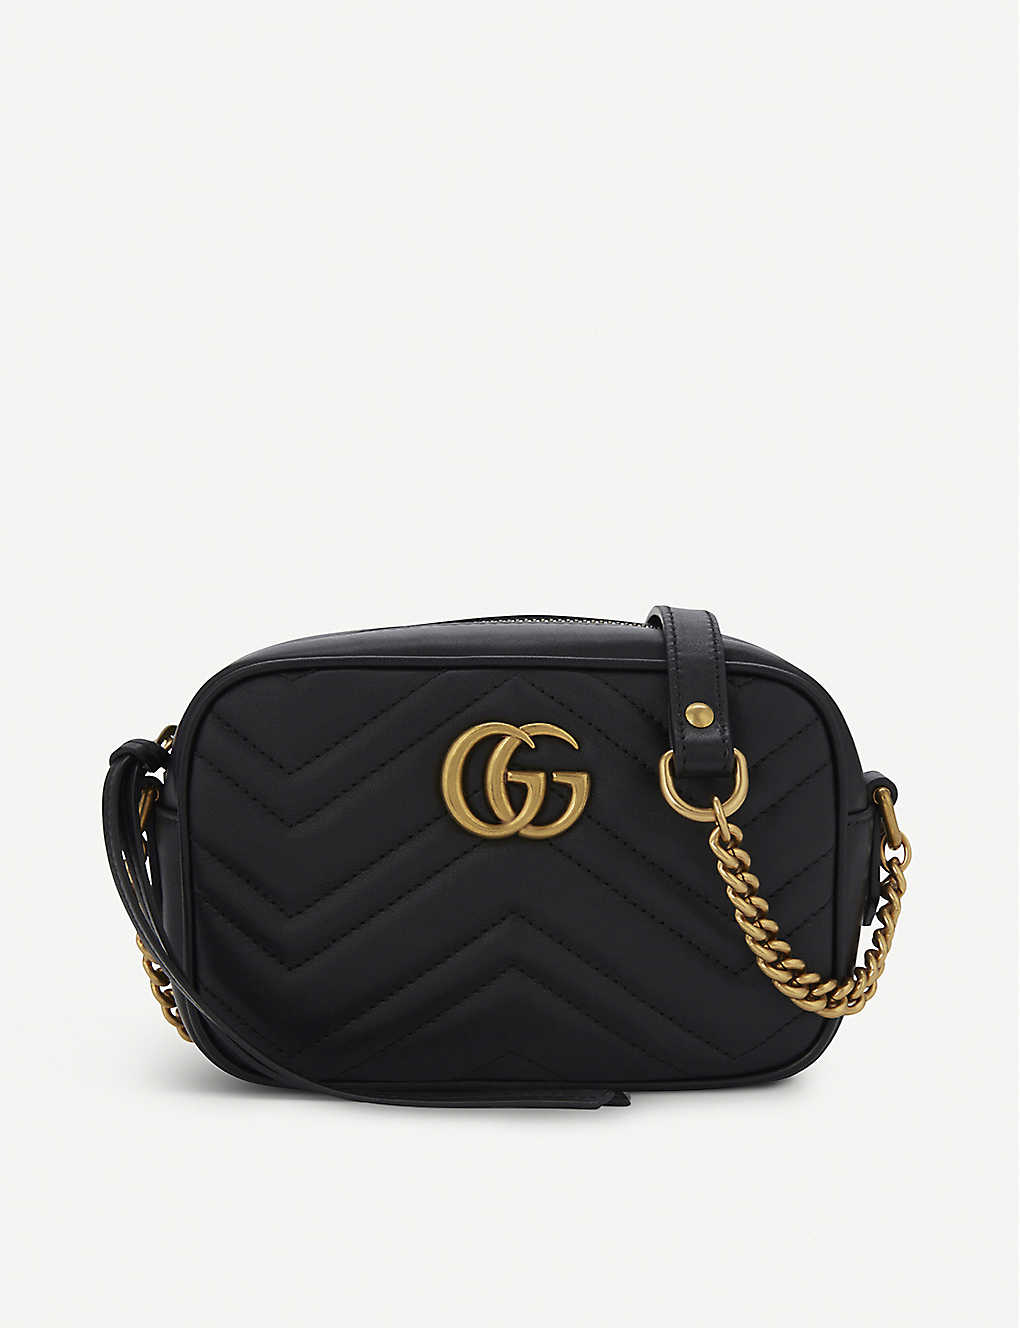 841c09fb8240 Gucci Leather Bags Price In India- Fenix Toulouse Handball